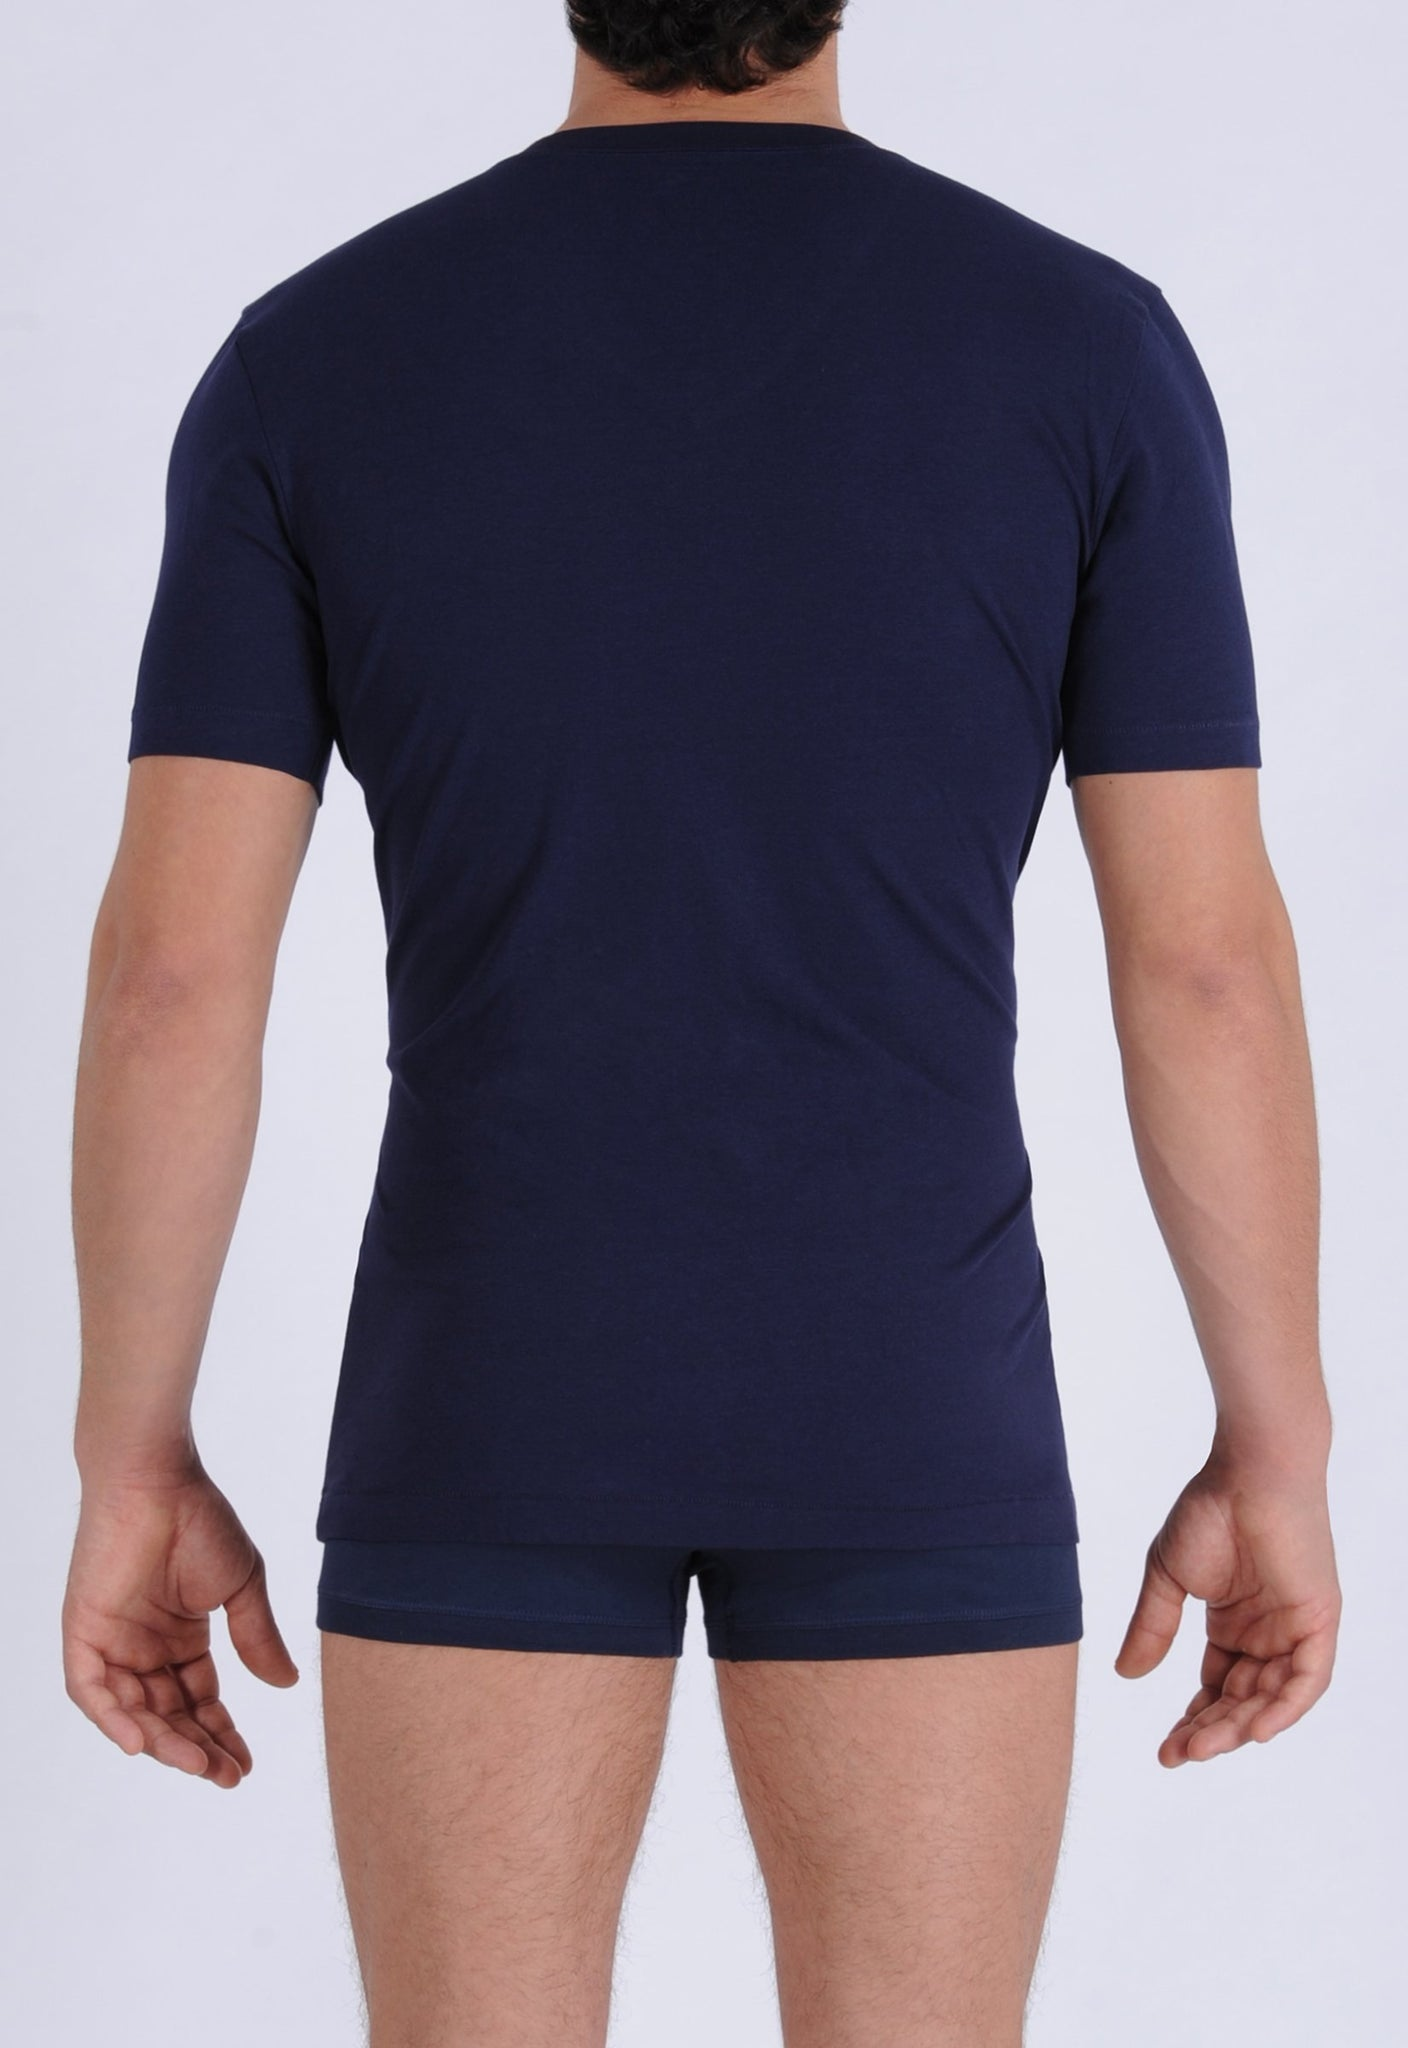 Ginch Gonch Signature Series - Crew Neck T-Shirt Navy Back